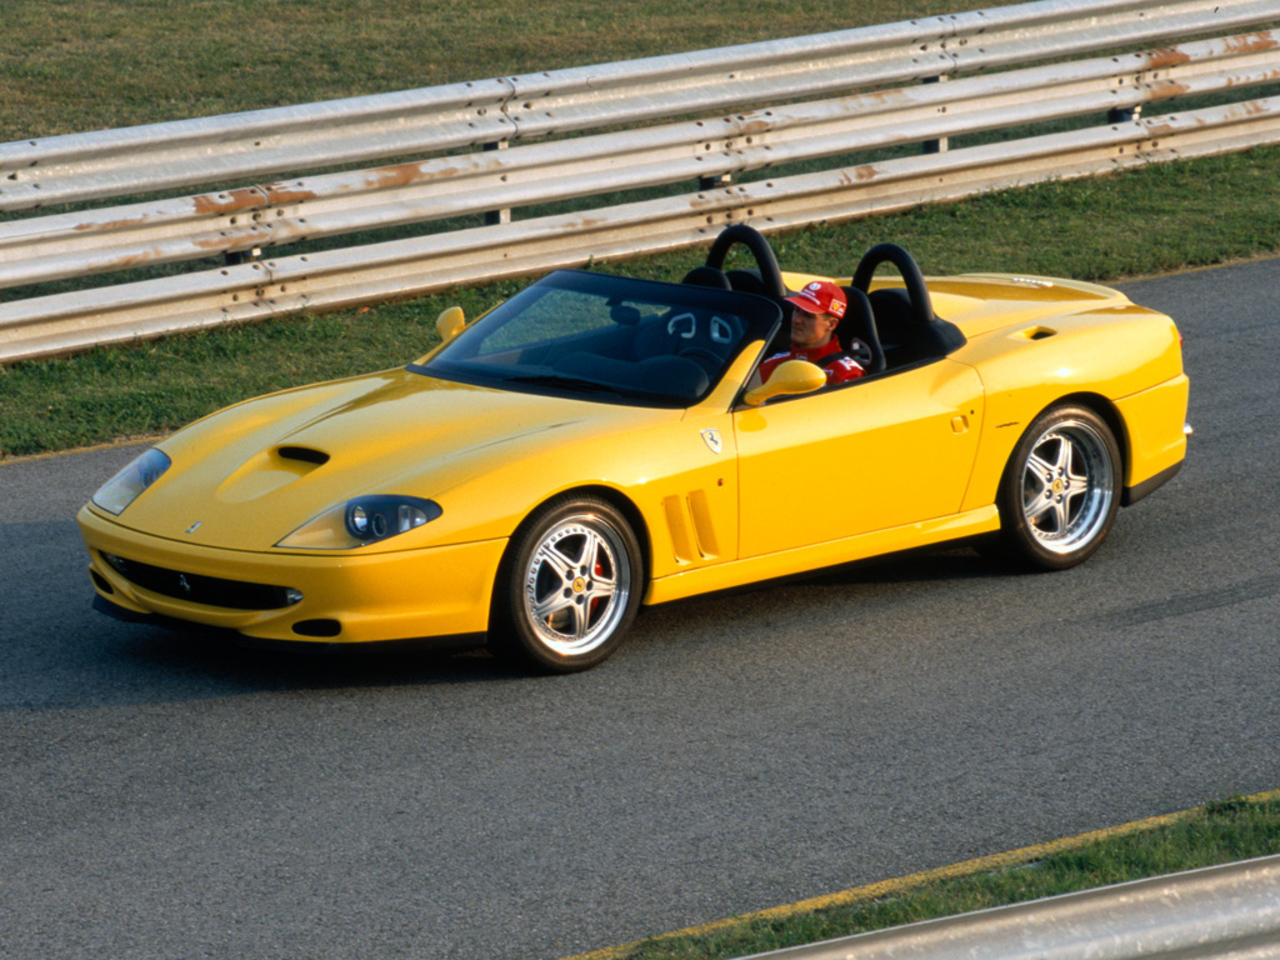 550 Barchetta Pininfarina, Schumacher at Fiorano circuit